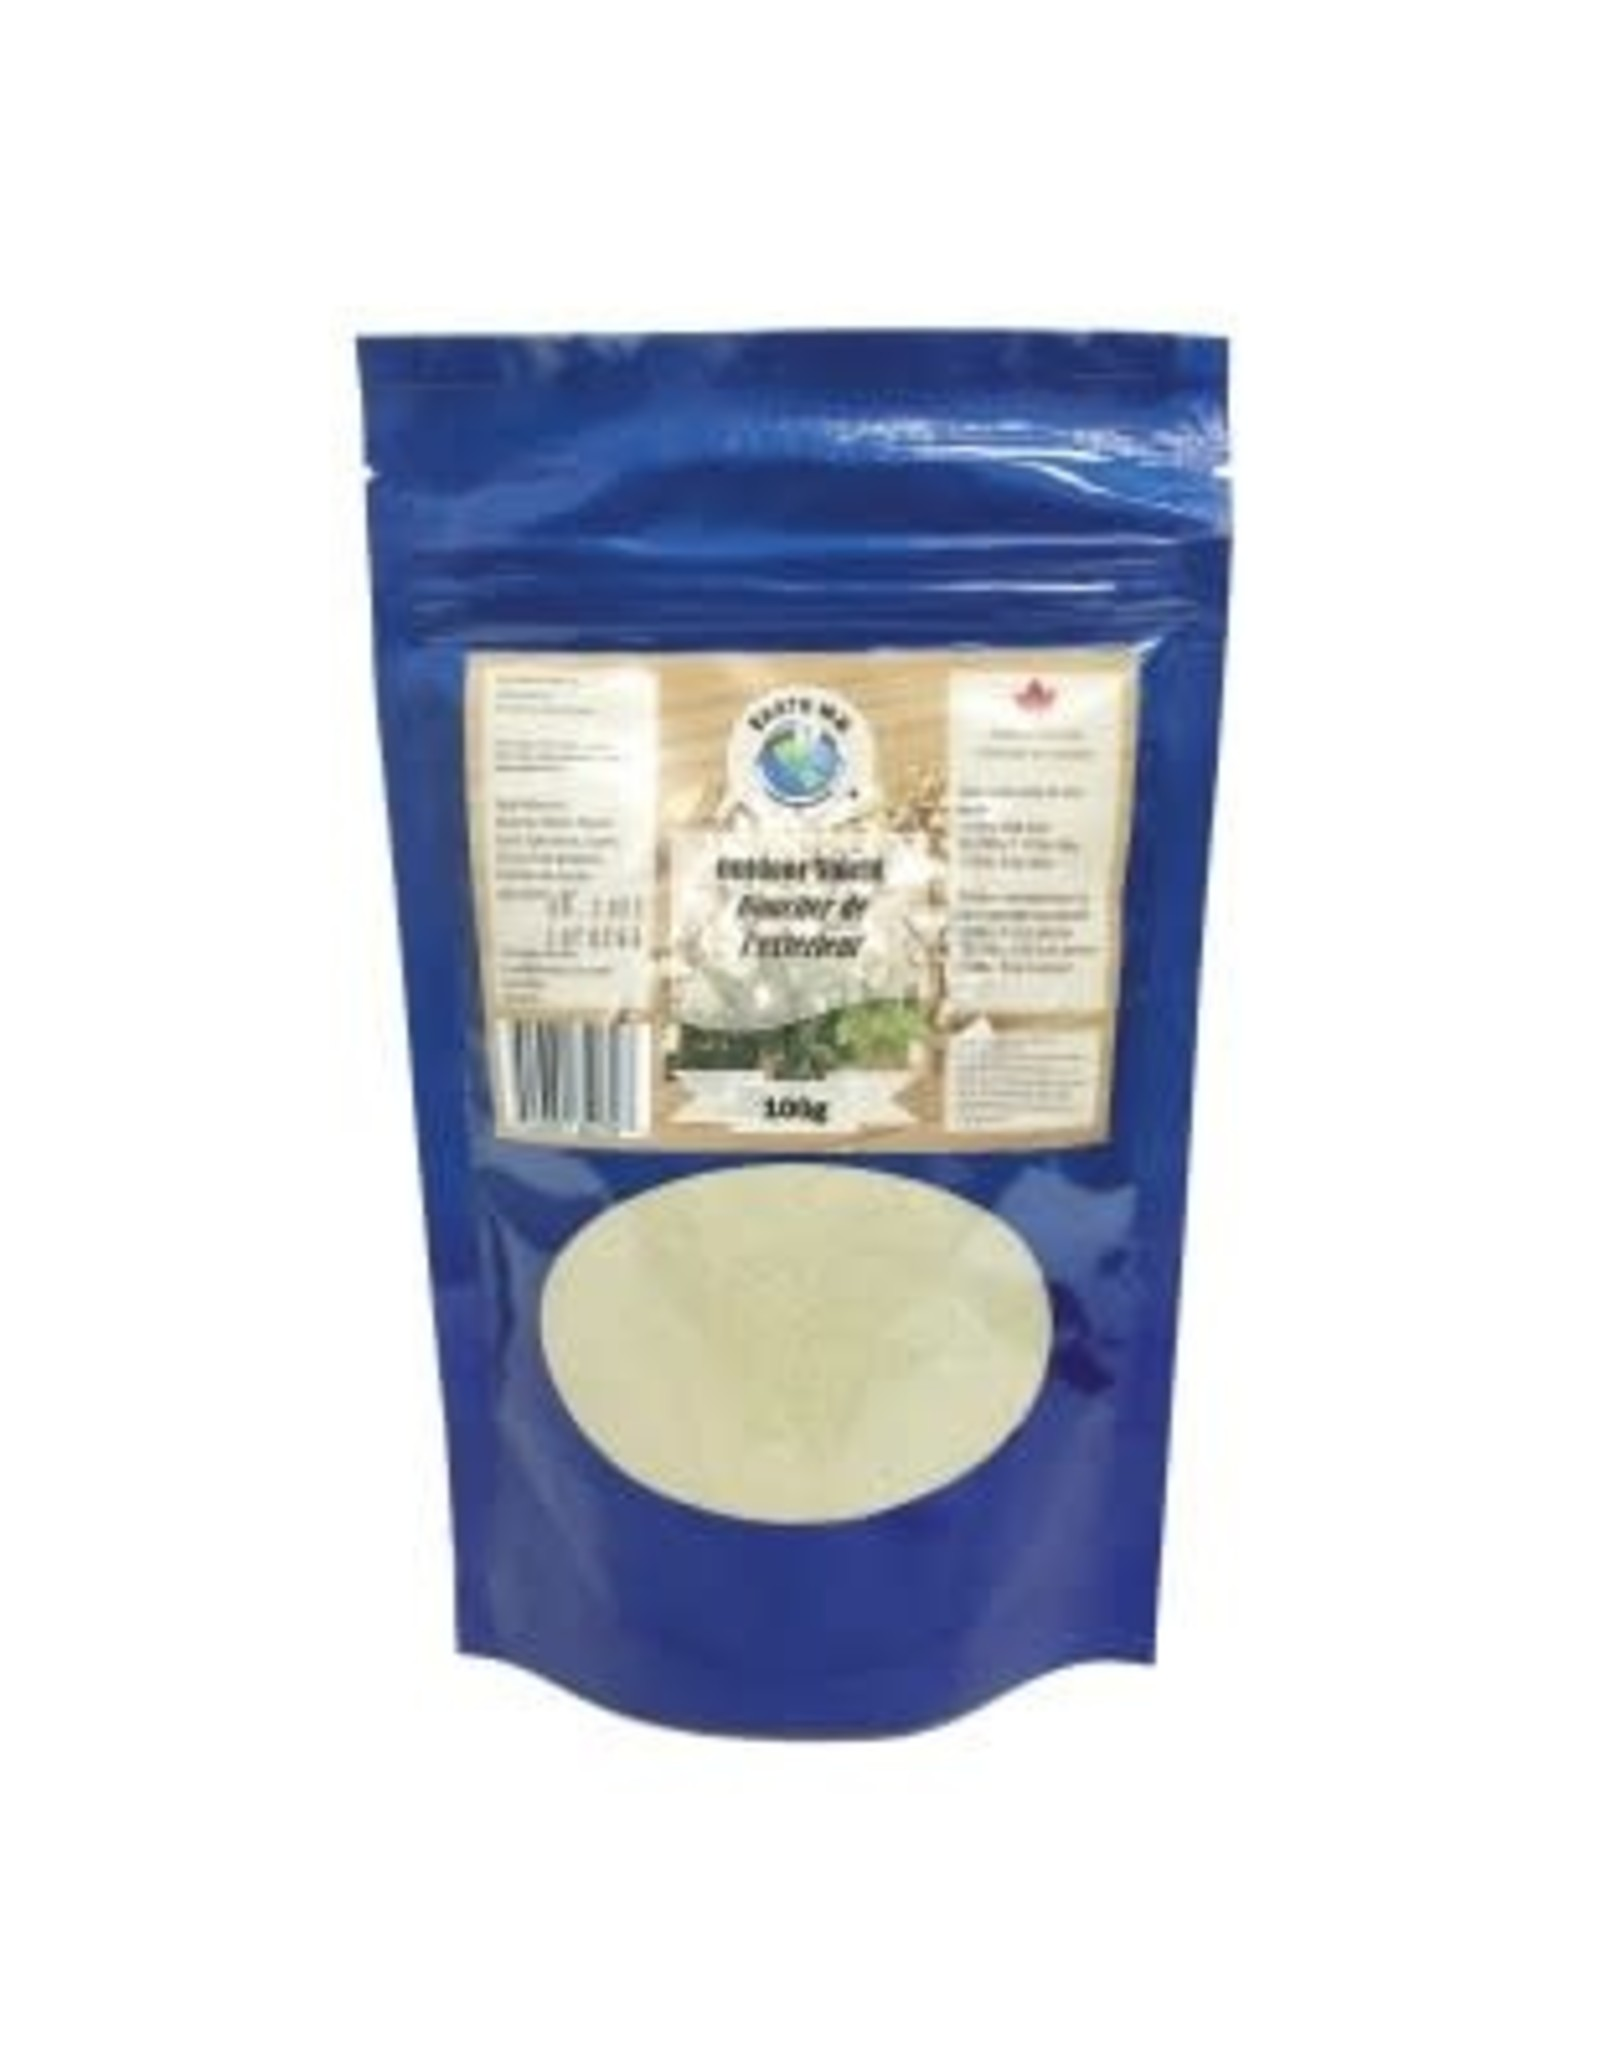 EarthMD EarthMD - Fleat+Tick Repellent 100g